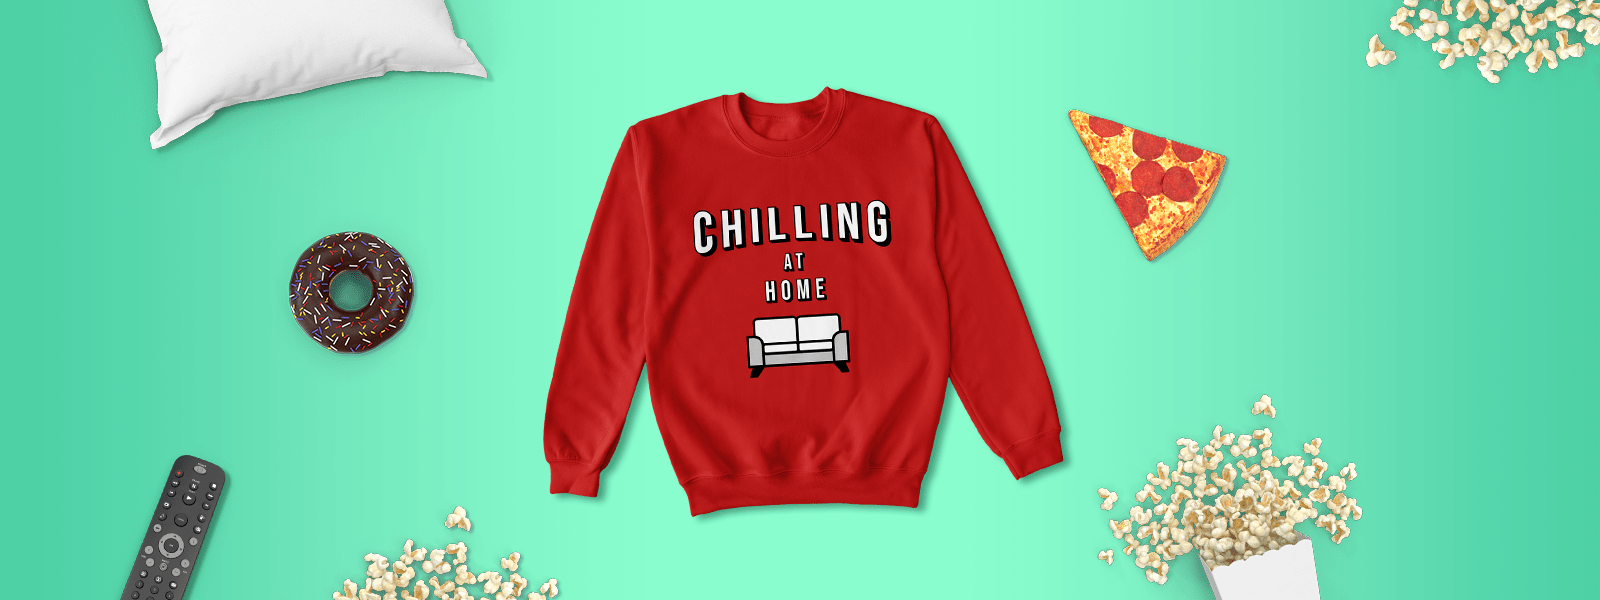 Best Chilling at Home Apparel